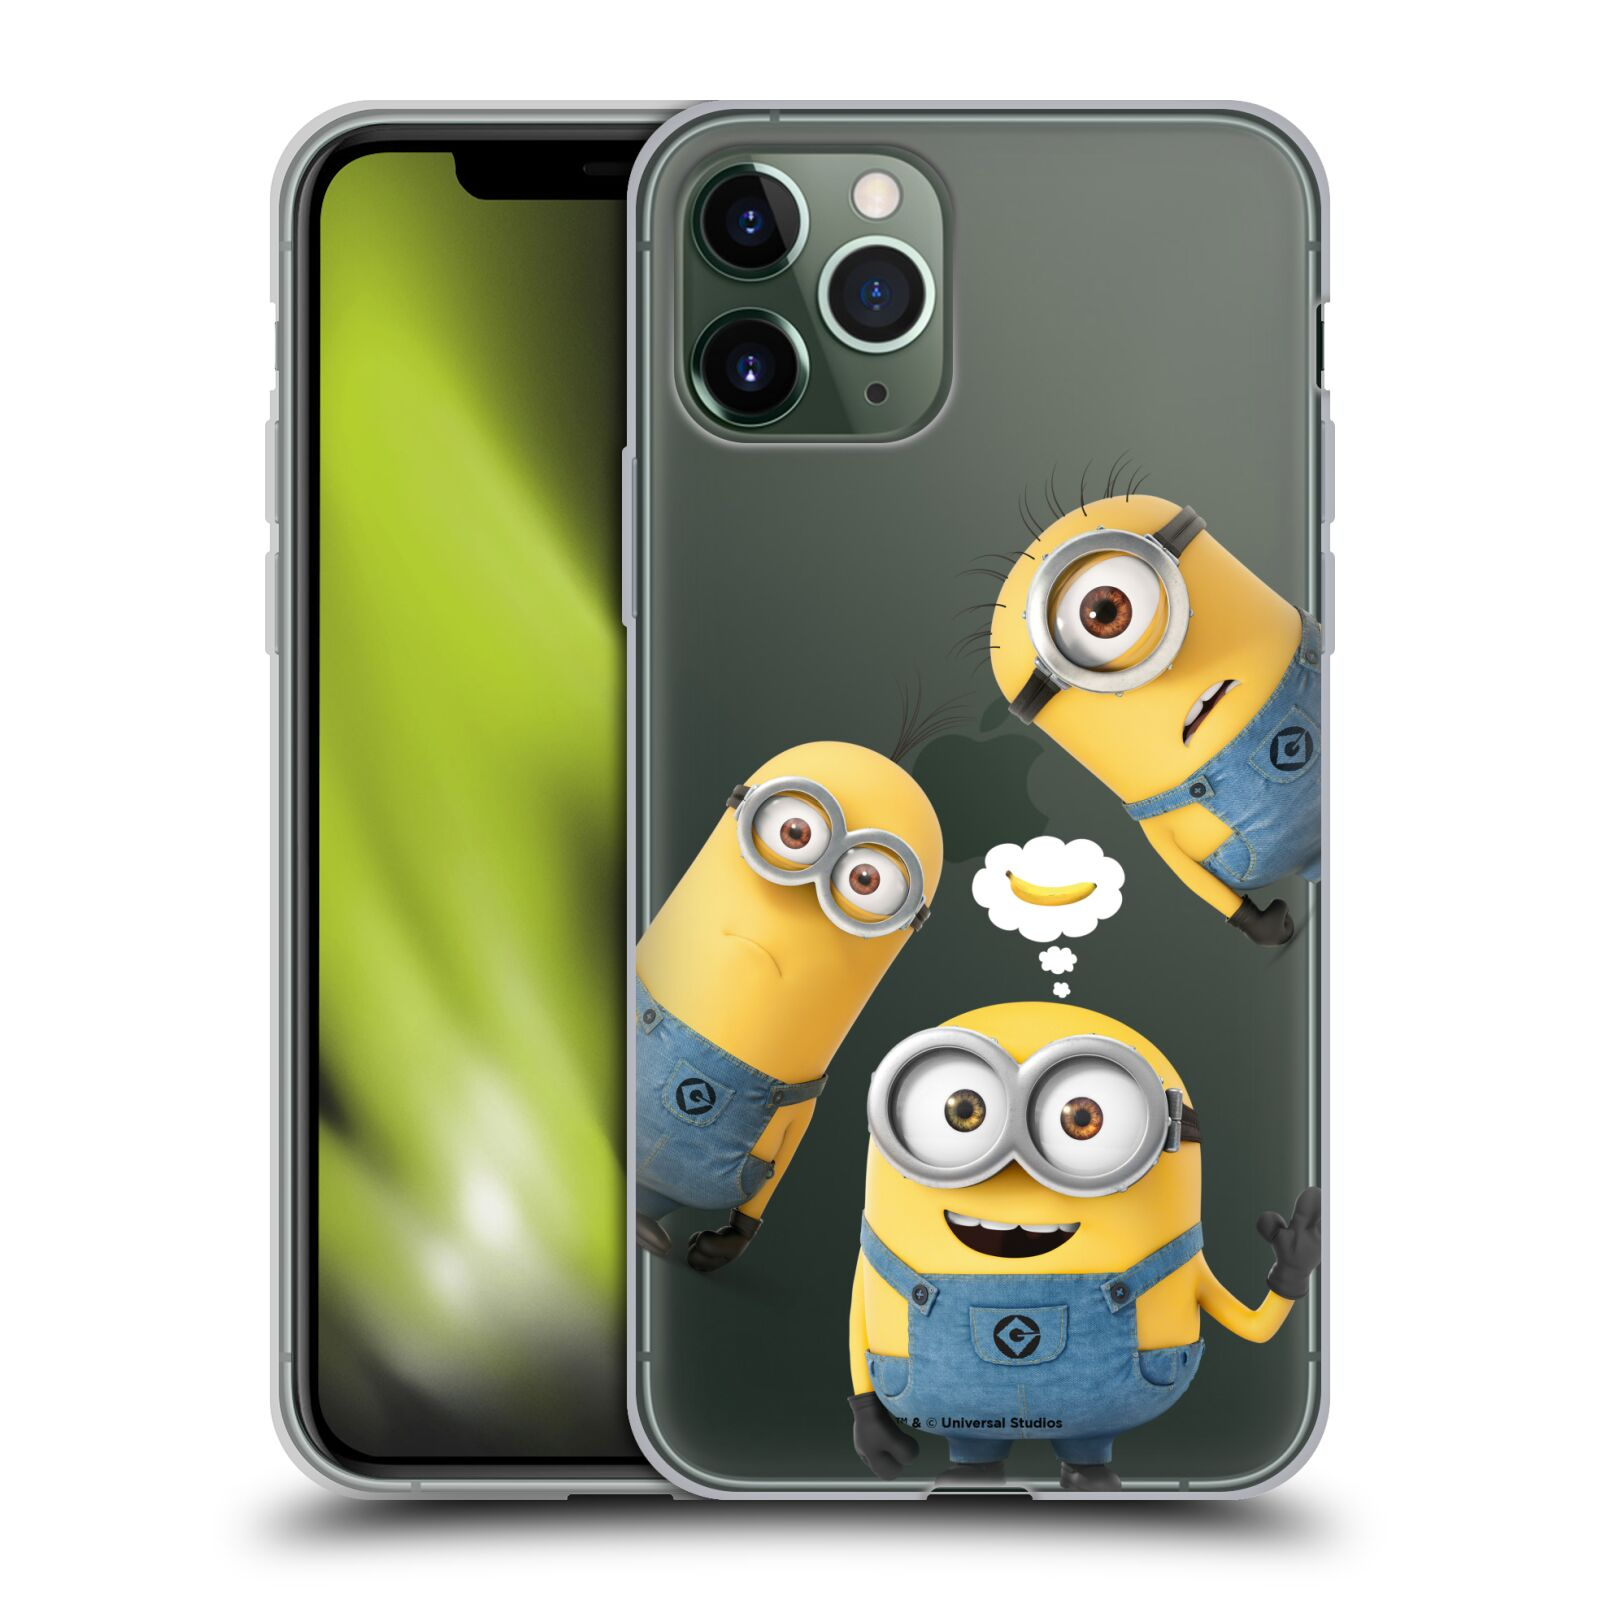 kryt na iphone 8 plus guess , Silikonové pouzdro na mobil Apple iPhone 11 Pro - Head Case - Mimoni Banana z filmu Já, padouch - Despicable Me